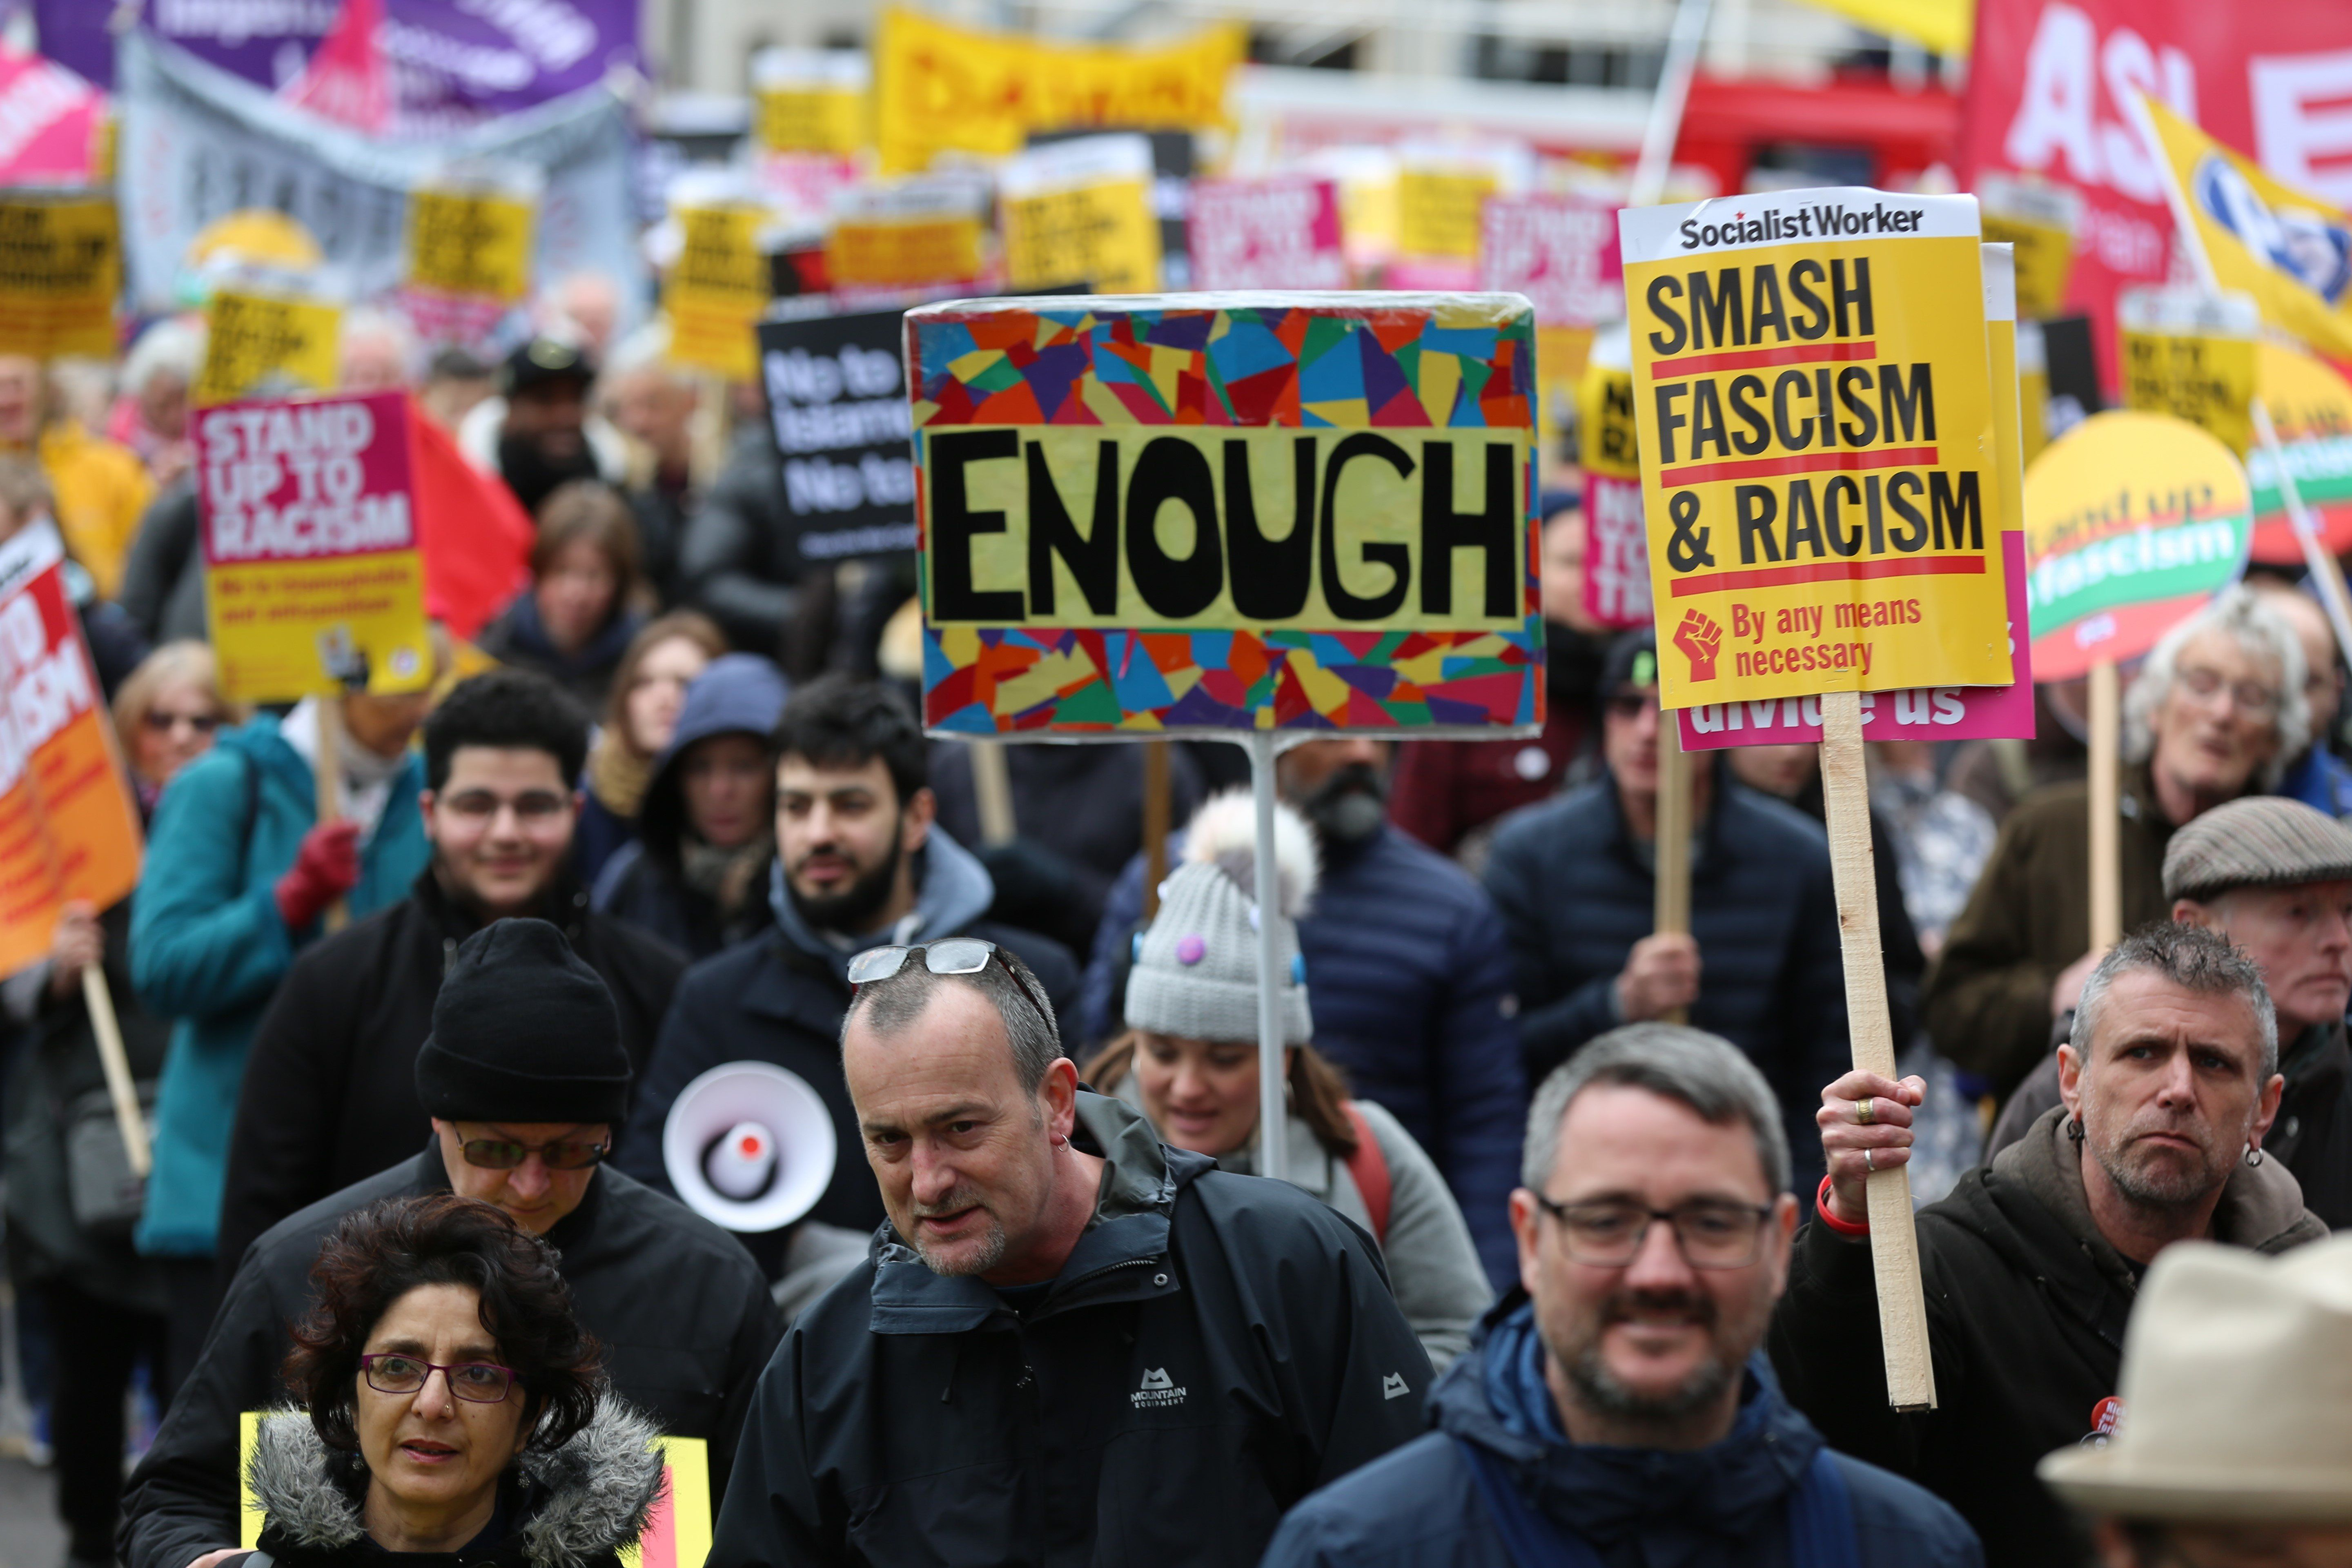 LONDON, UNITED KINGDOM - MARCH 16: People gather to stage a demonstration against the twin terror attacks in New Zealand mosques, islamophobia, antisemitism and racism in London, United Kingdom on March 16, 2019. (Photo by Tayfun Salci/Anadolu Agency/Getty Images)